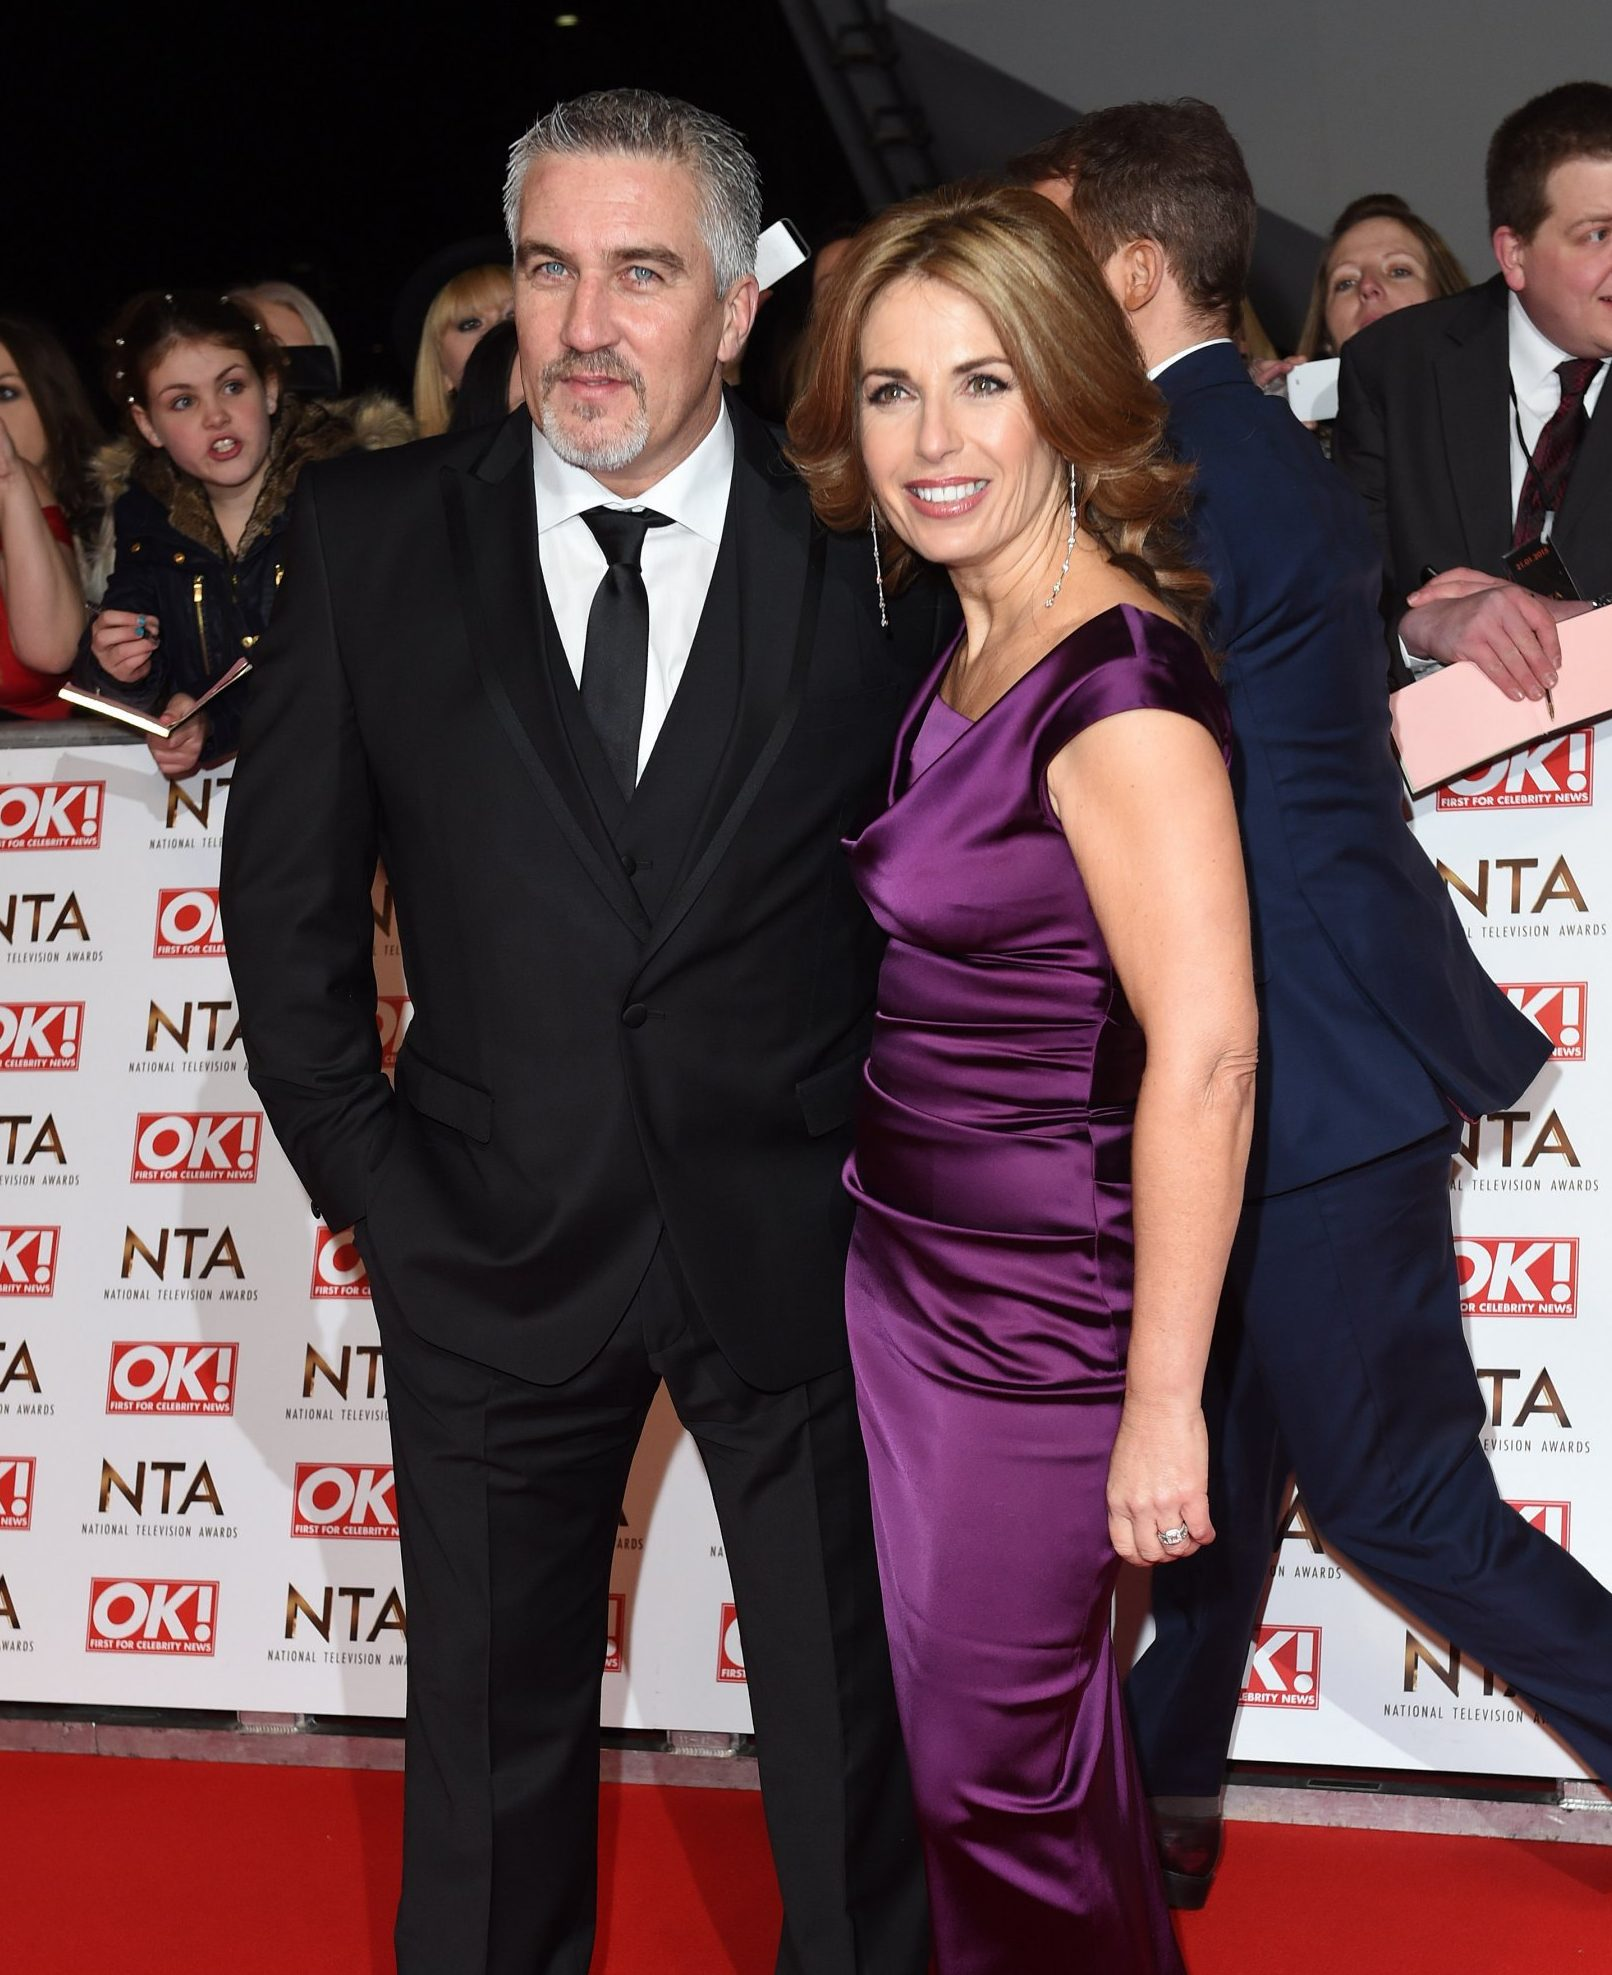 LONDON, ENGLAND - JANUARY 21: Paul Hollywood and wife Alex Hollywood attend the National Television Awards at 02 Arena on January 21, 2015 in London, England. (Photo by Karwai Tang/WireImage)